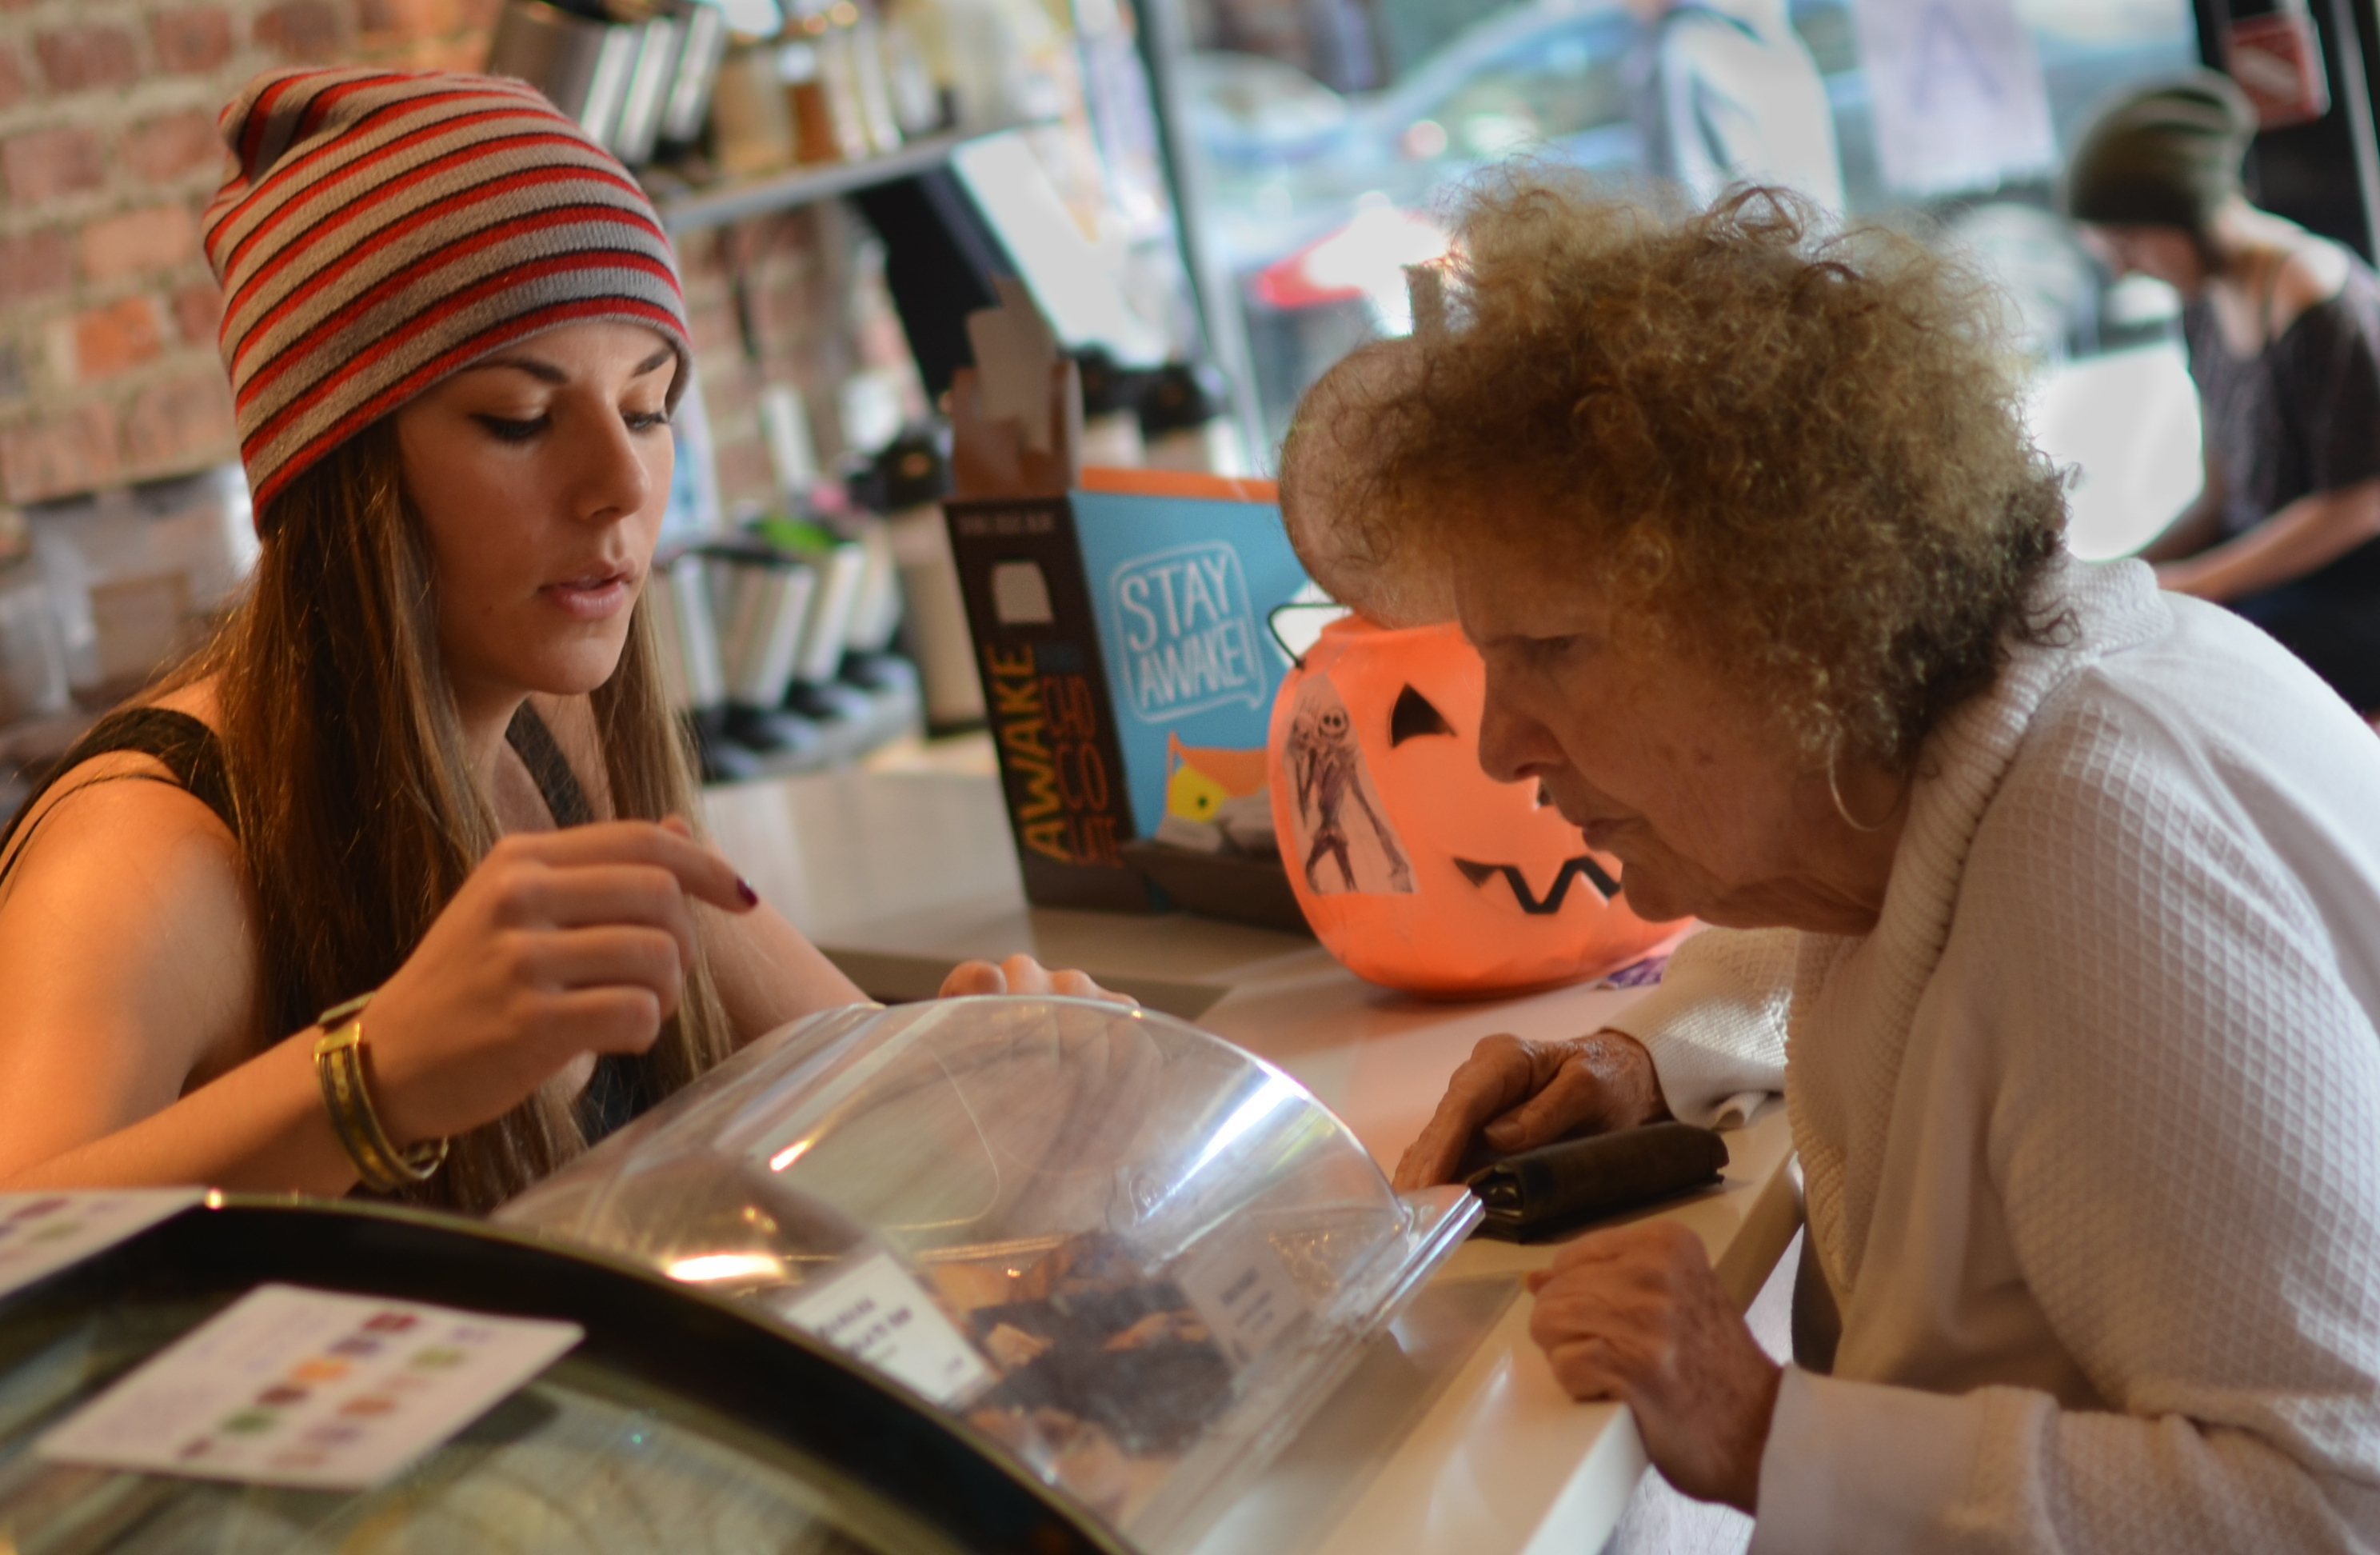 barista and customer in The Bean